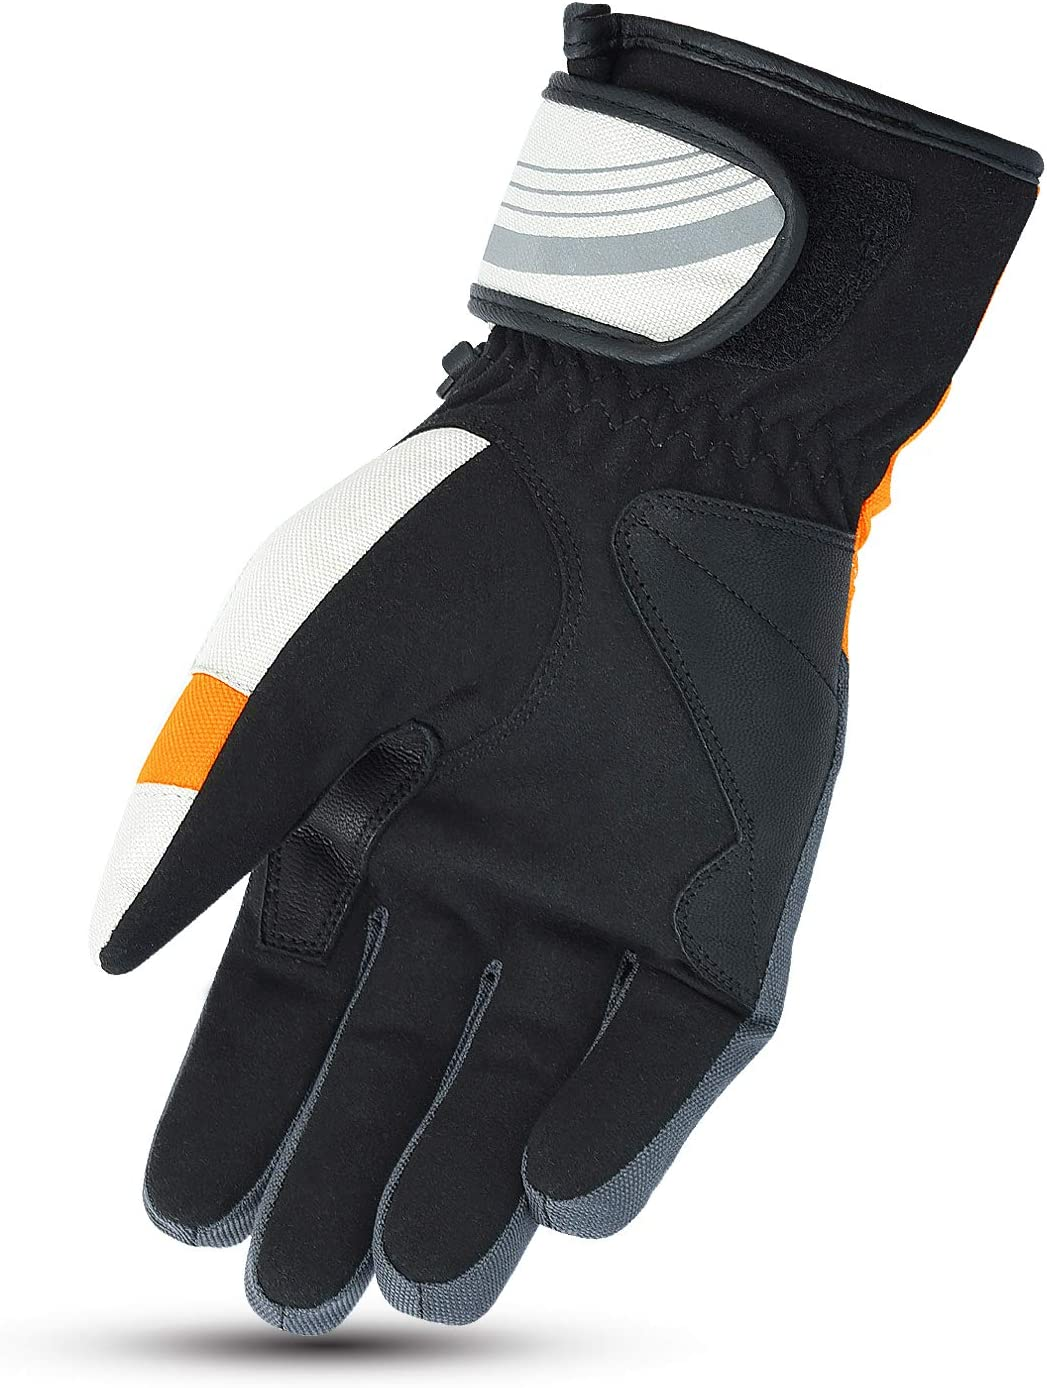 M, Fluro JET Motorcycle Motorbike Gloves Light Weight Waterproof Thermal Knuckle Protection Reflective Detailing AquaTex